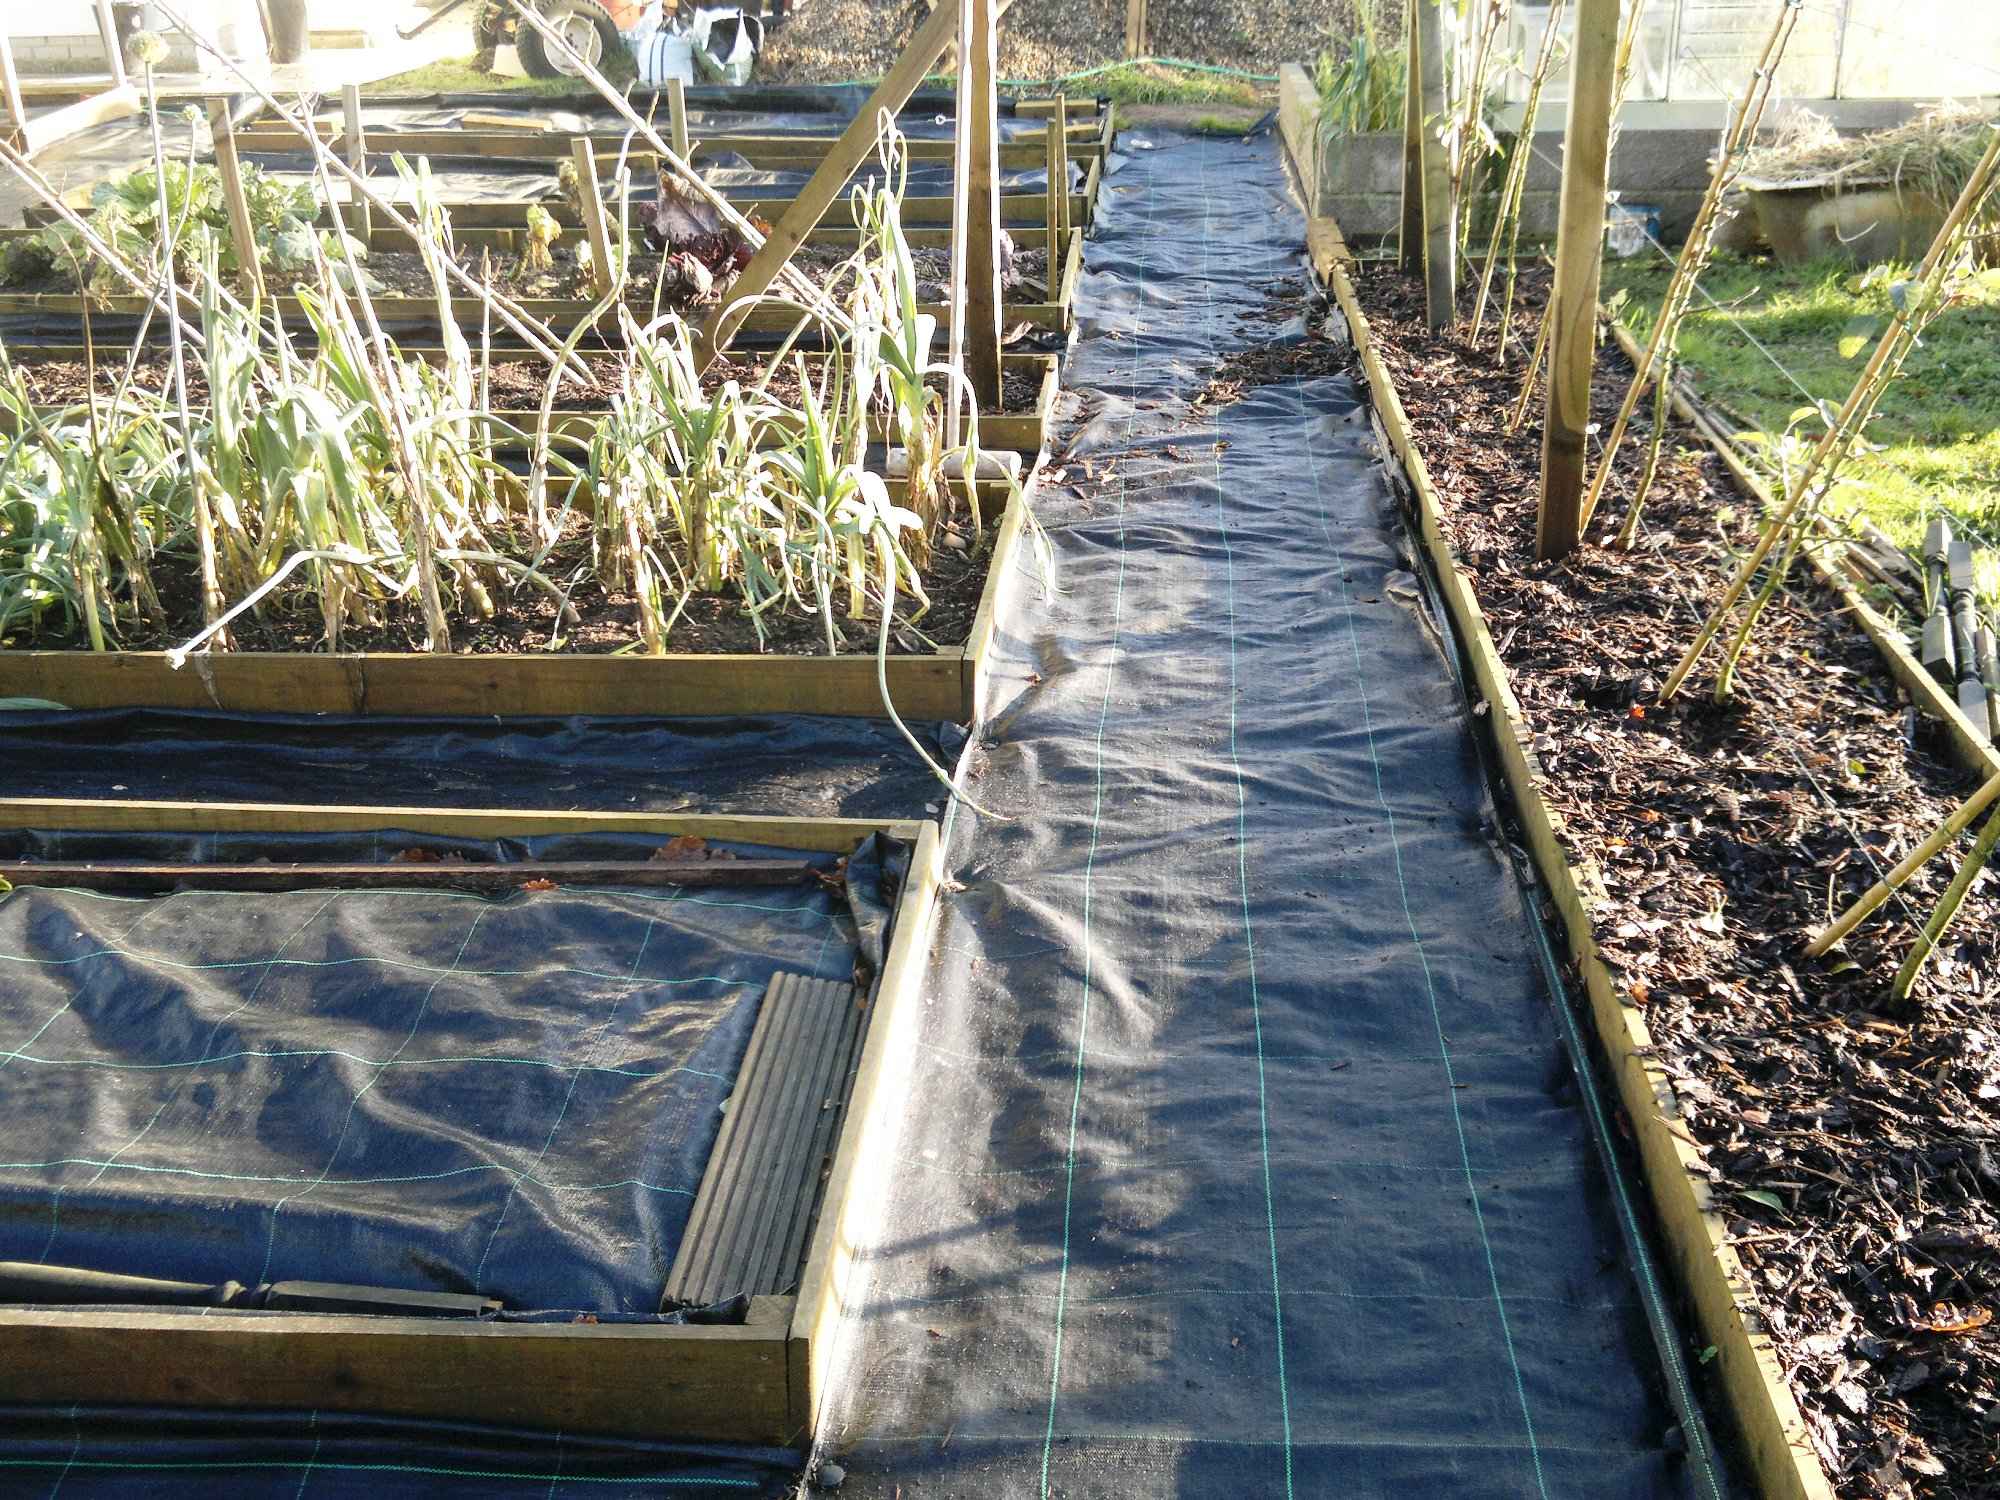 Weed suppressing membrane laid between beds